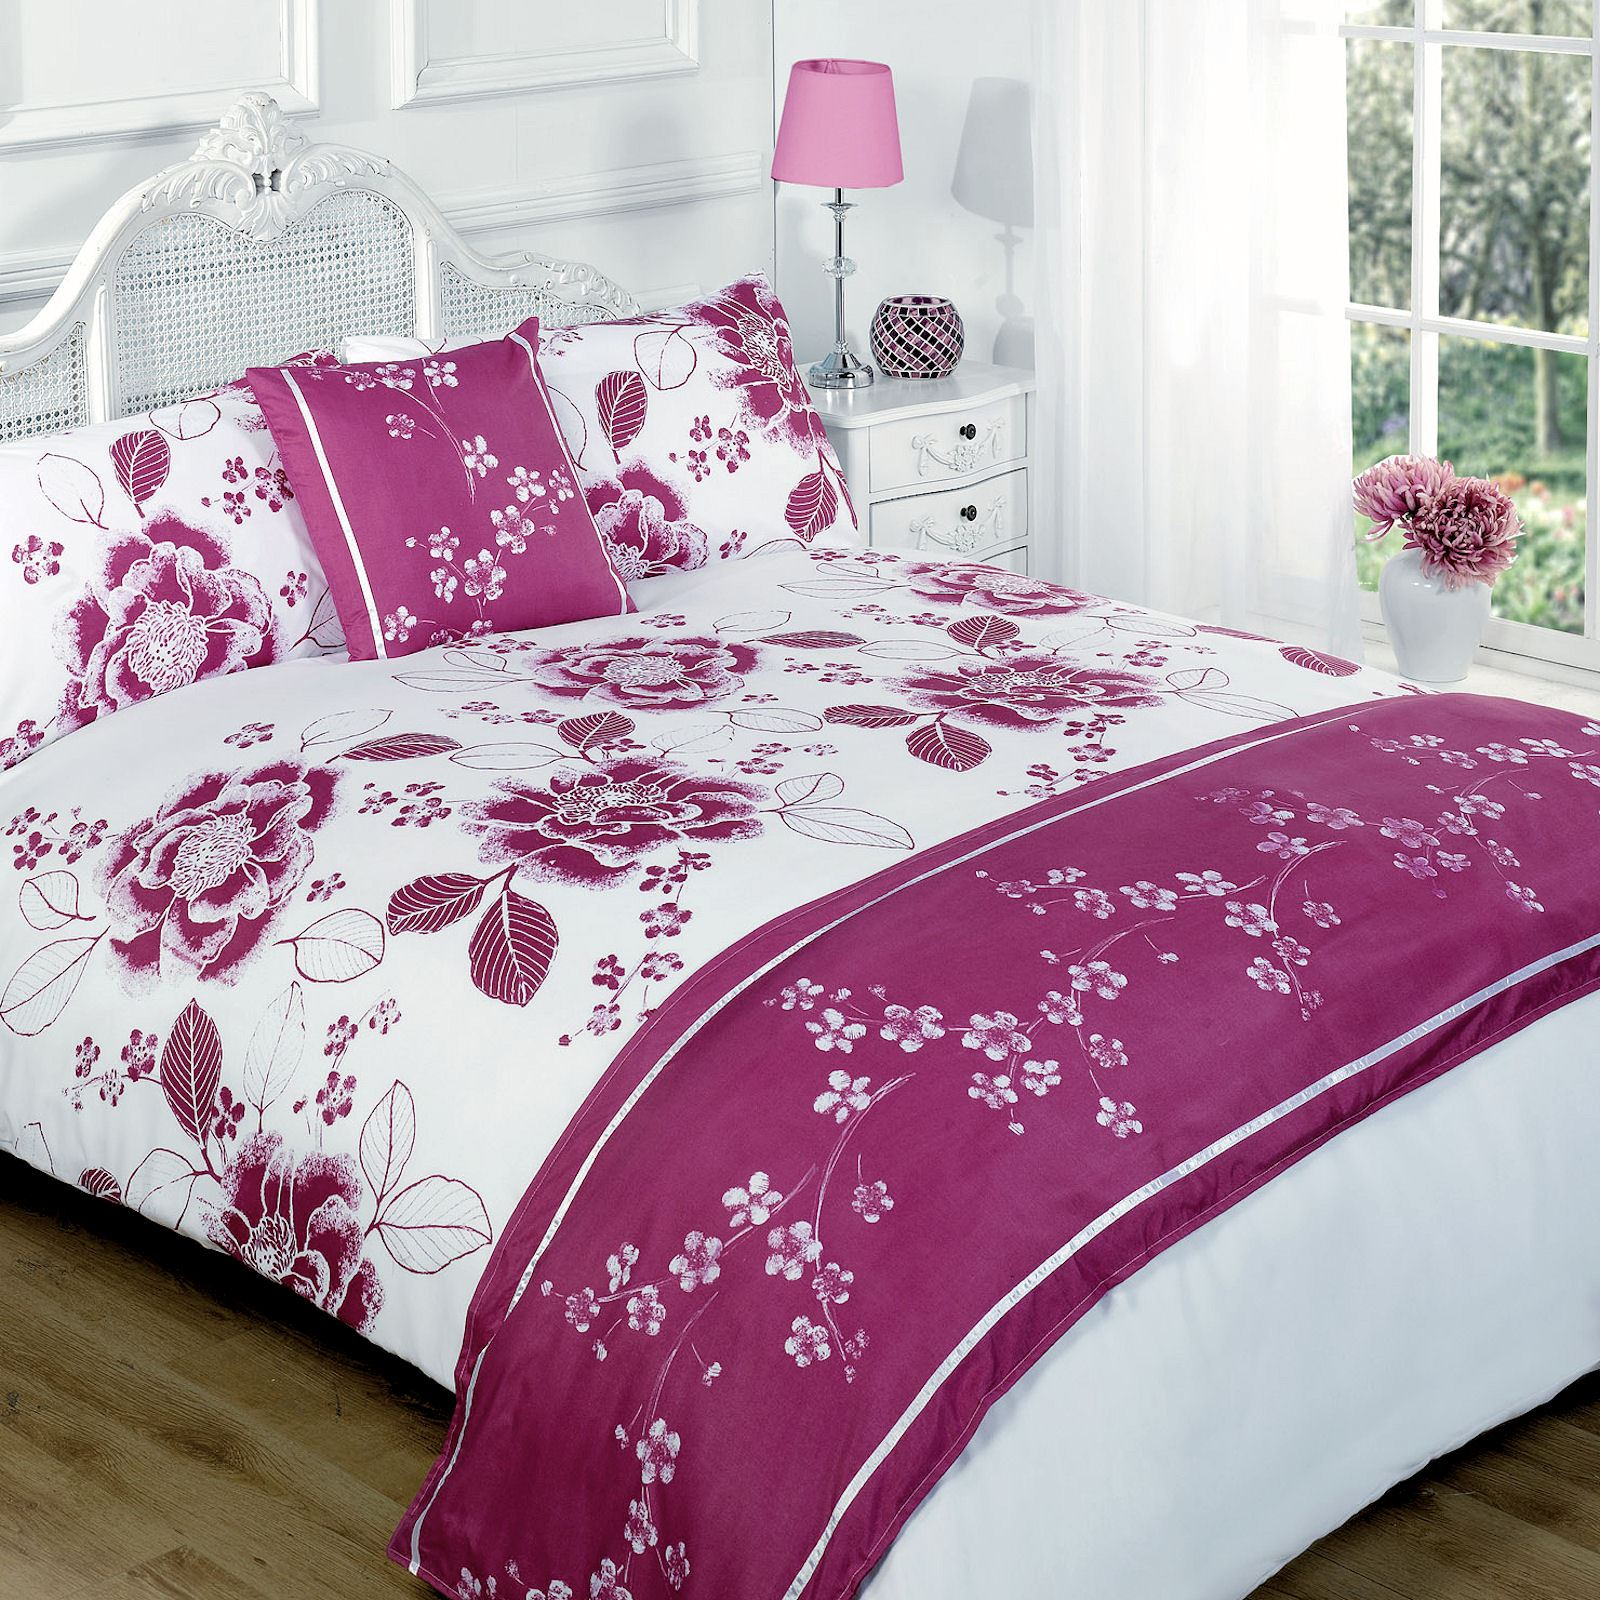 plum click pc bed expand sets set purple lorenzo to p damask comforter